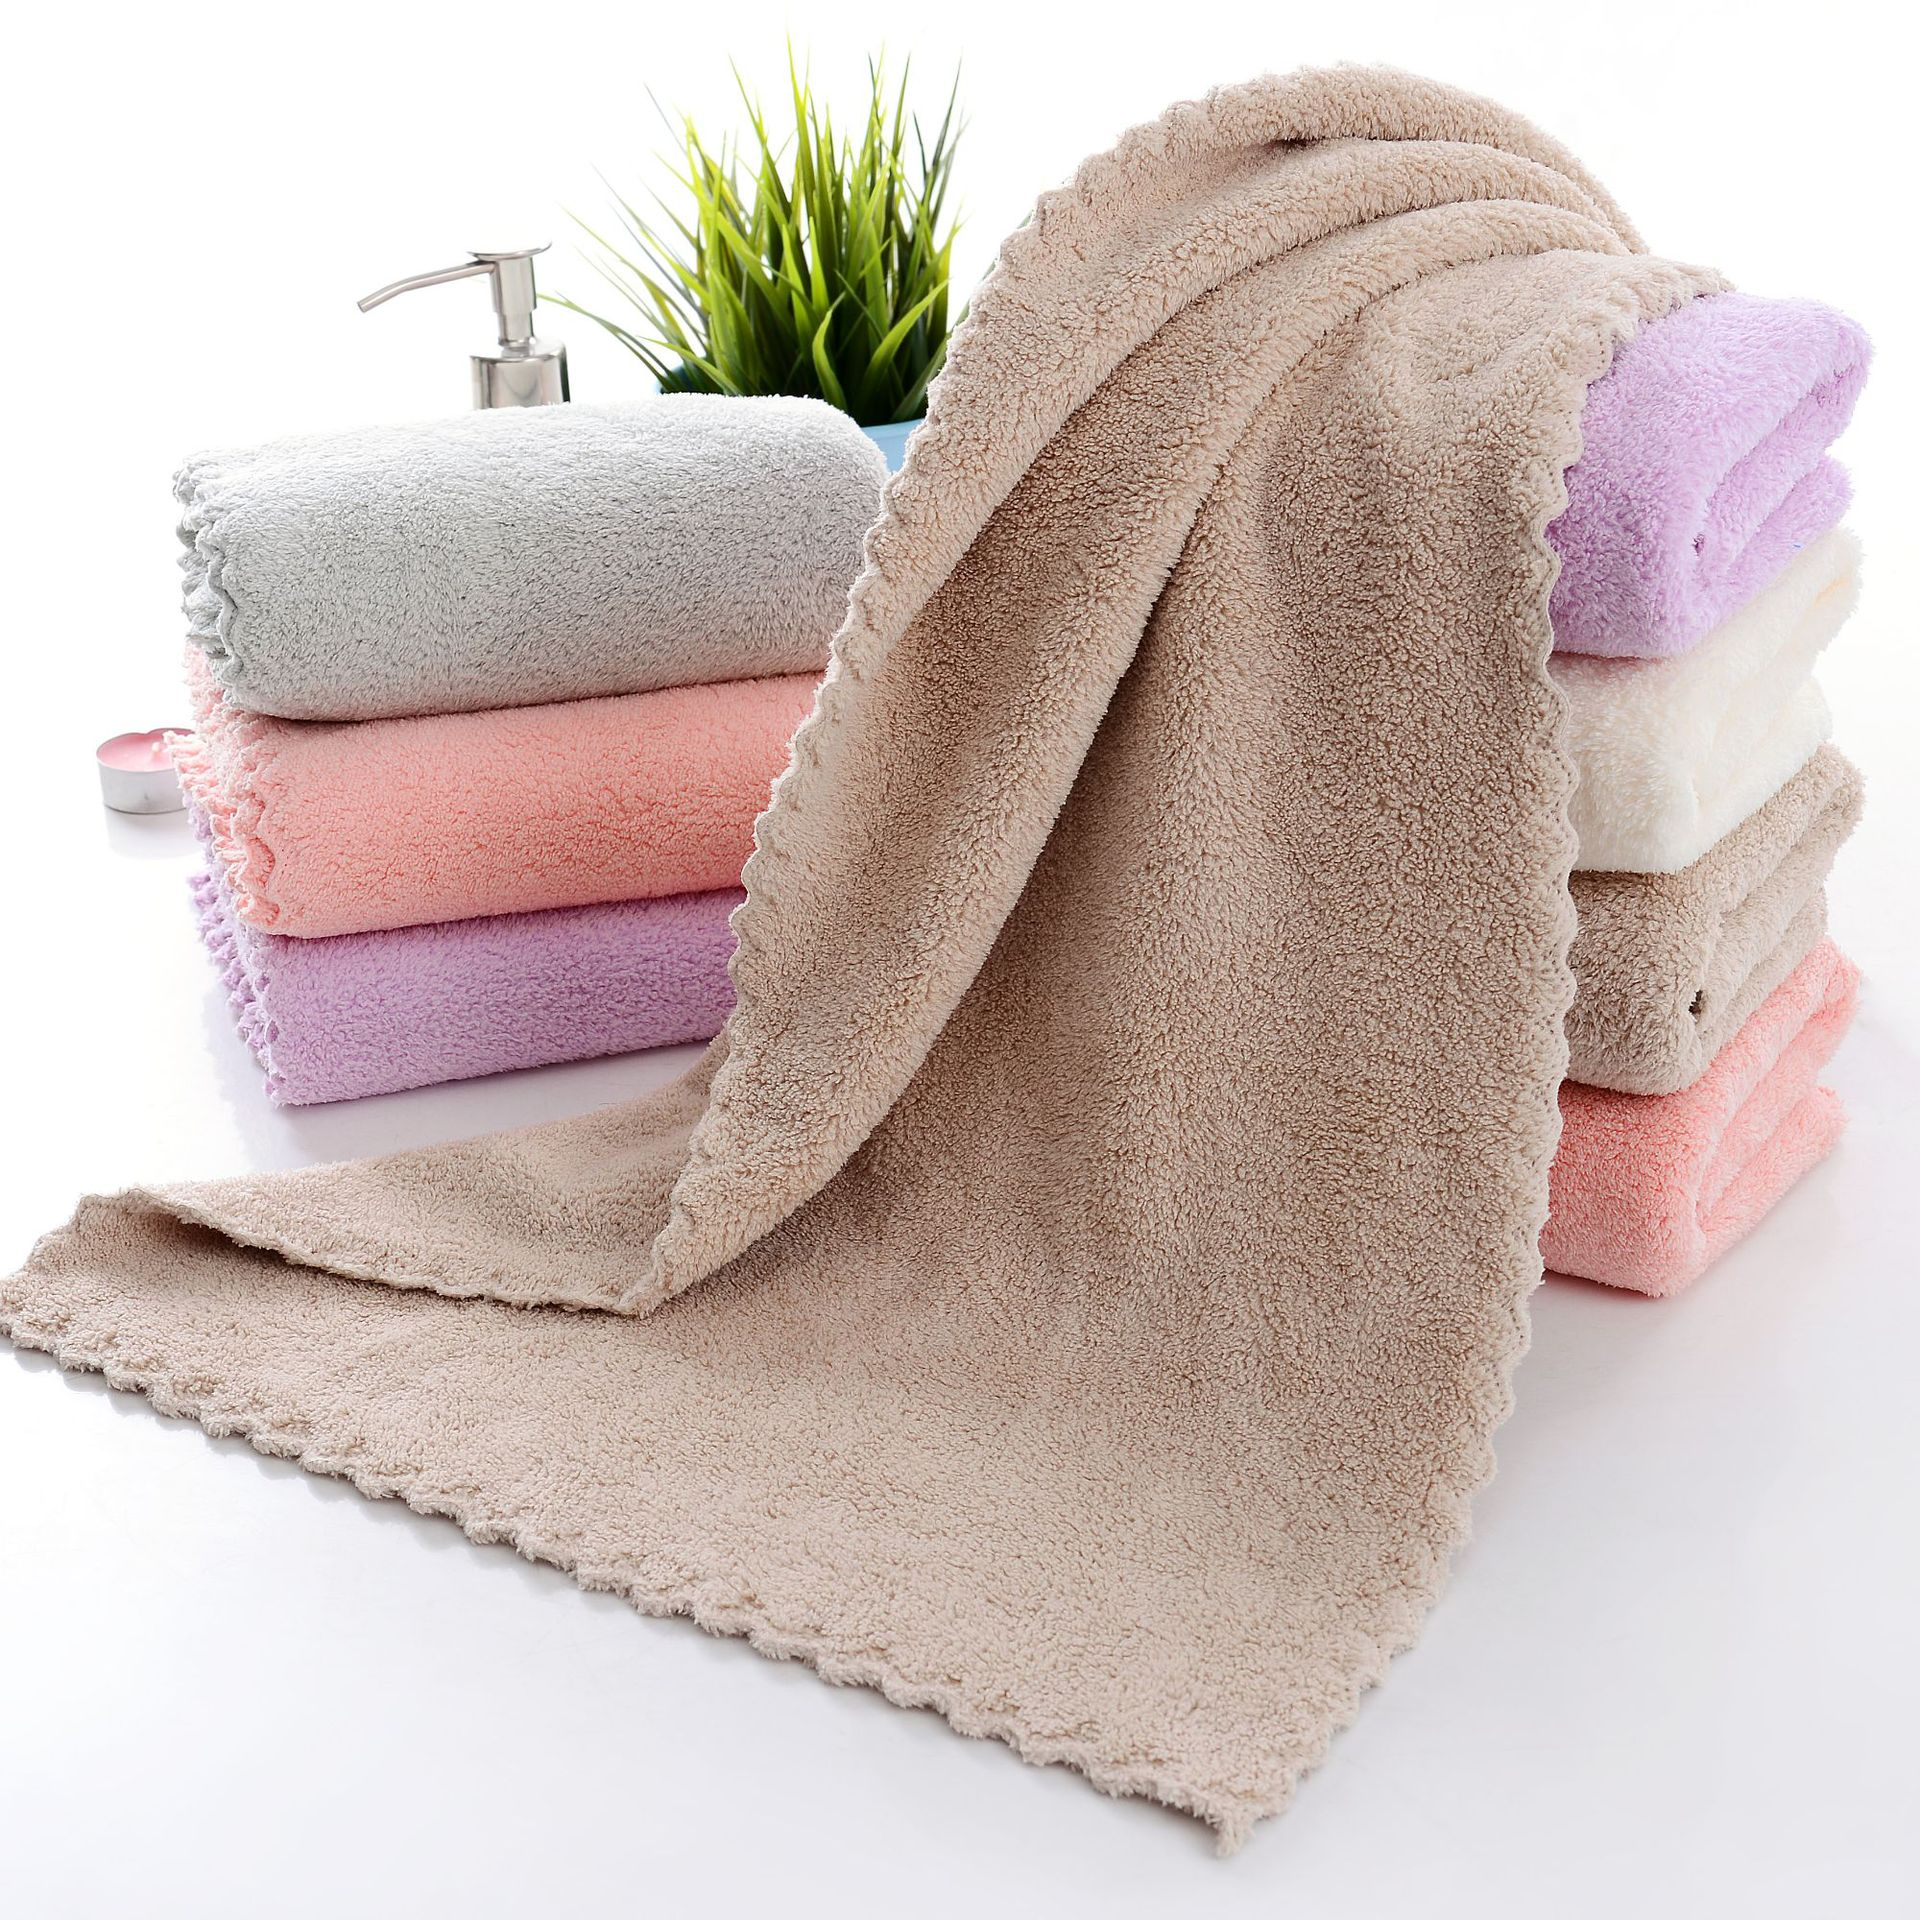 XIANGYUE Coral velvet cut edge towel plain wash face towel soft absorbent gift couples generally do